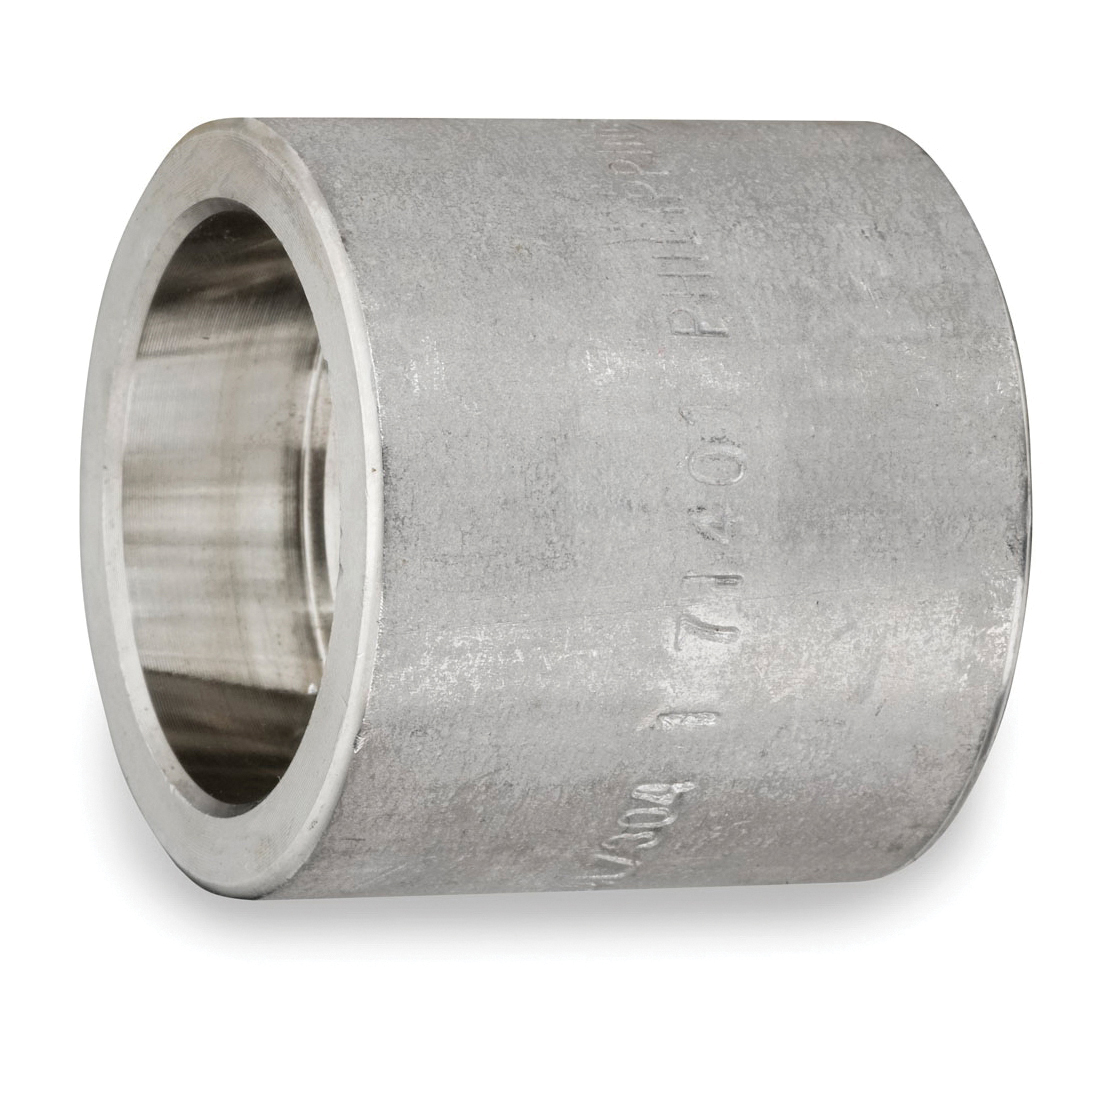 Smith-Cooper® S5034HC006 Half Coupling, 3/4 in Nominal, Socket Weld End Style, 3000 lb, 304L Stainless Steel